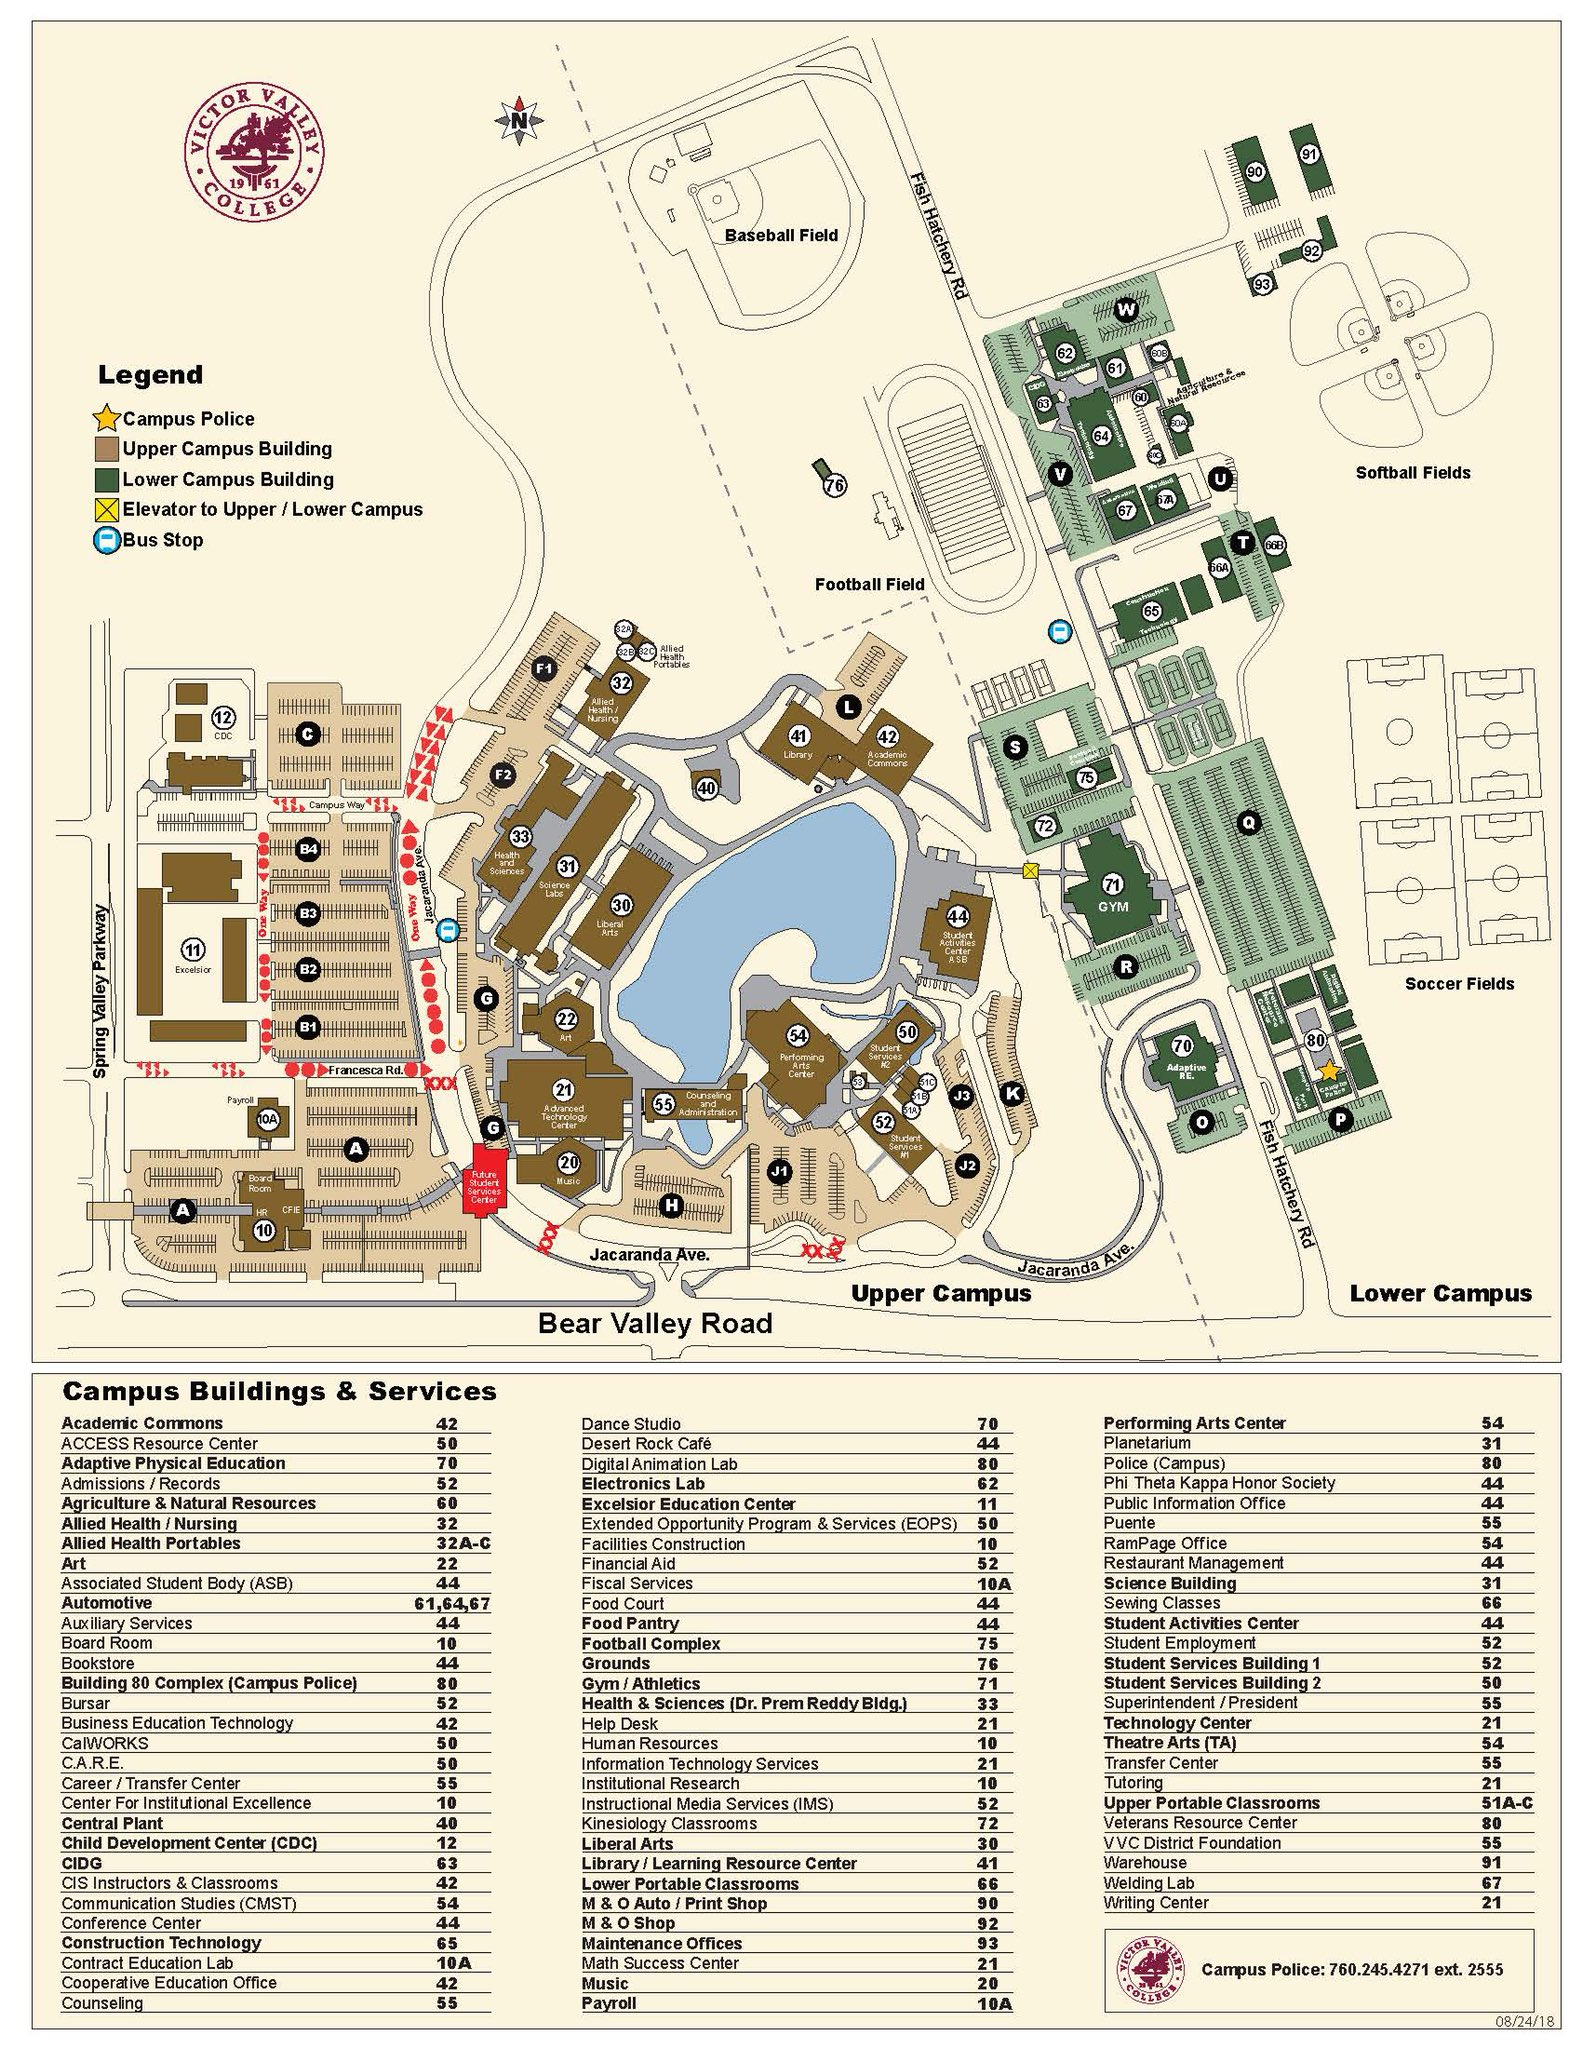 Victor Valley College Campus Map | Campus Map on uc san diego campus map, san bernardino valley college graduation, san bernardino valley college library, los angeles valley college campus map, san bernardino valley college campus guide, california state san bernardino map, mt. san antonio college campus map, san bernardino valley college transcripts, sb valley college map, san bernardino freeway map, arrowhead regional medical center campus map, cal state san bernardino campus map, banner desert medical center campus map, west valley college map, san bernardino university campus, southeast technical institute campus map, university of san francisco campus map, college of san mateo campus map, mount san antonio college campus map, san jac north campus map,